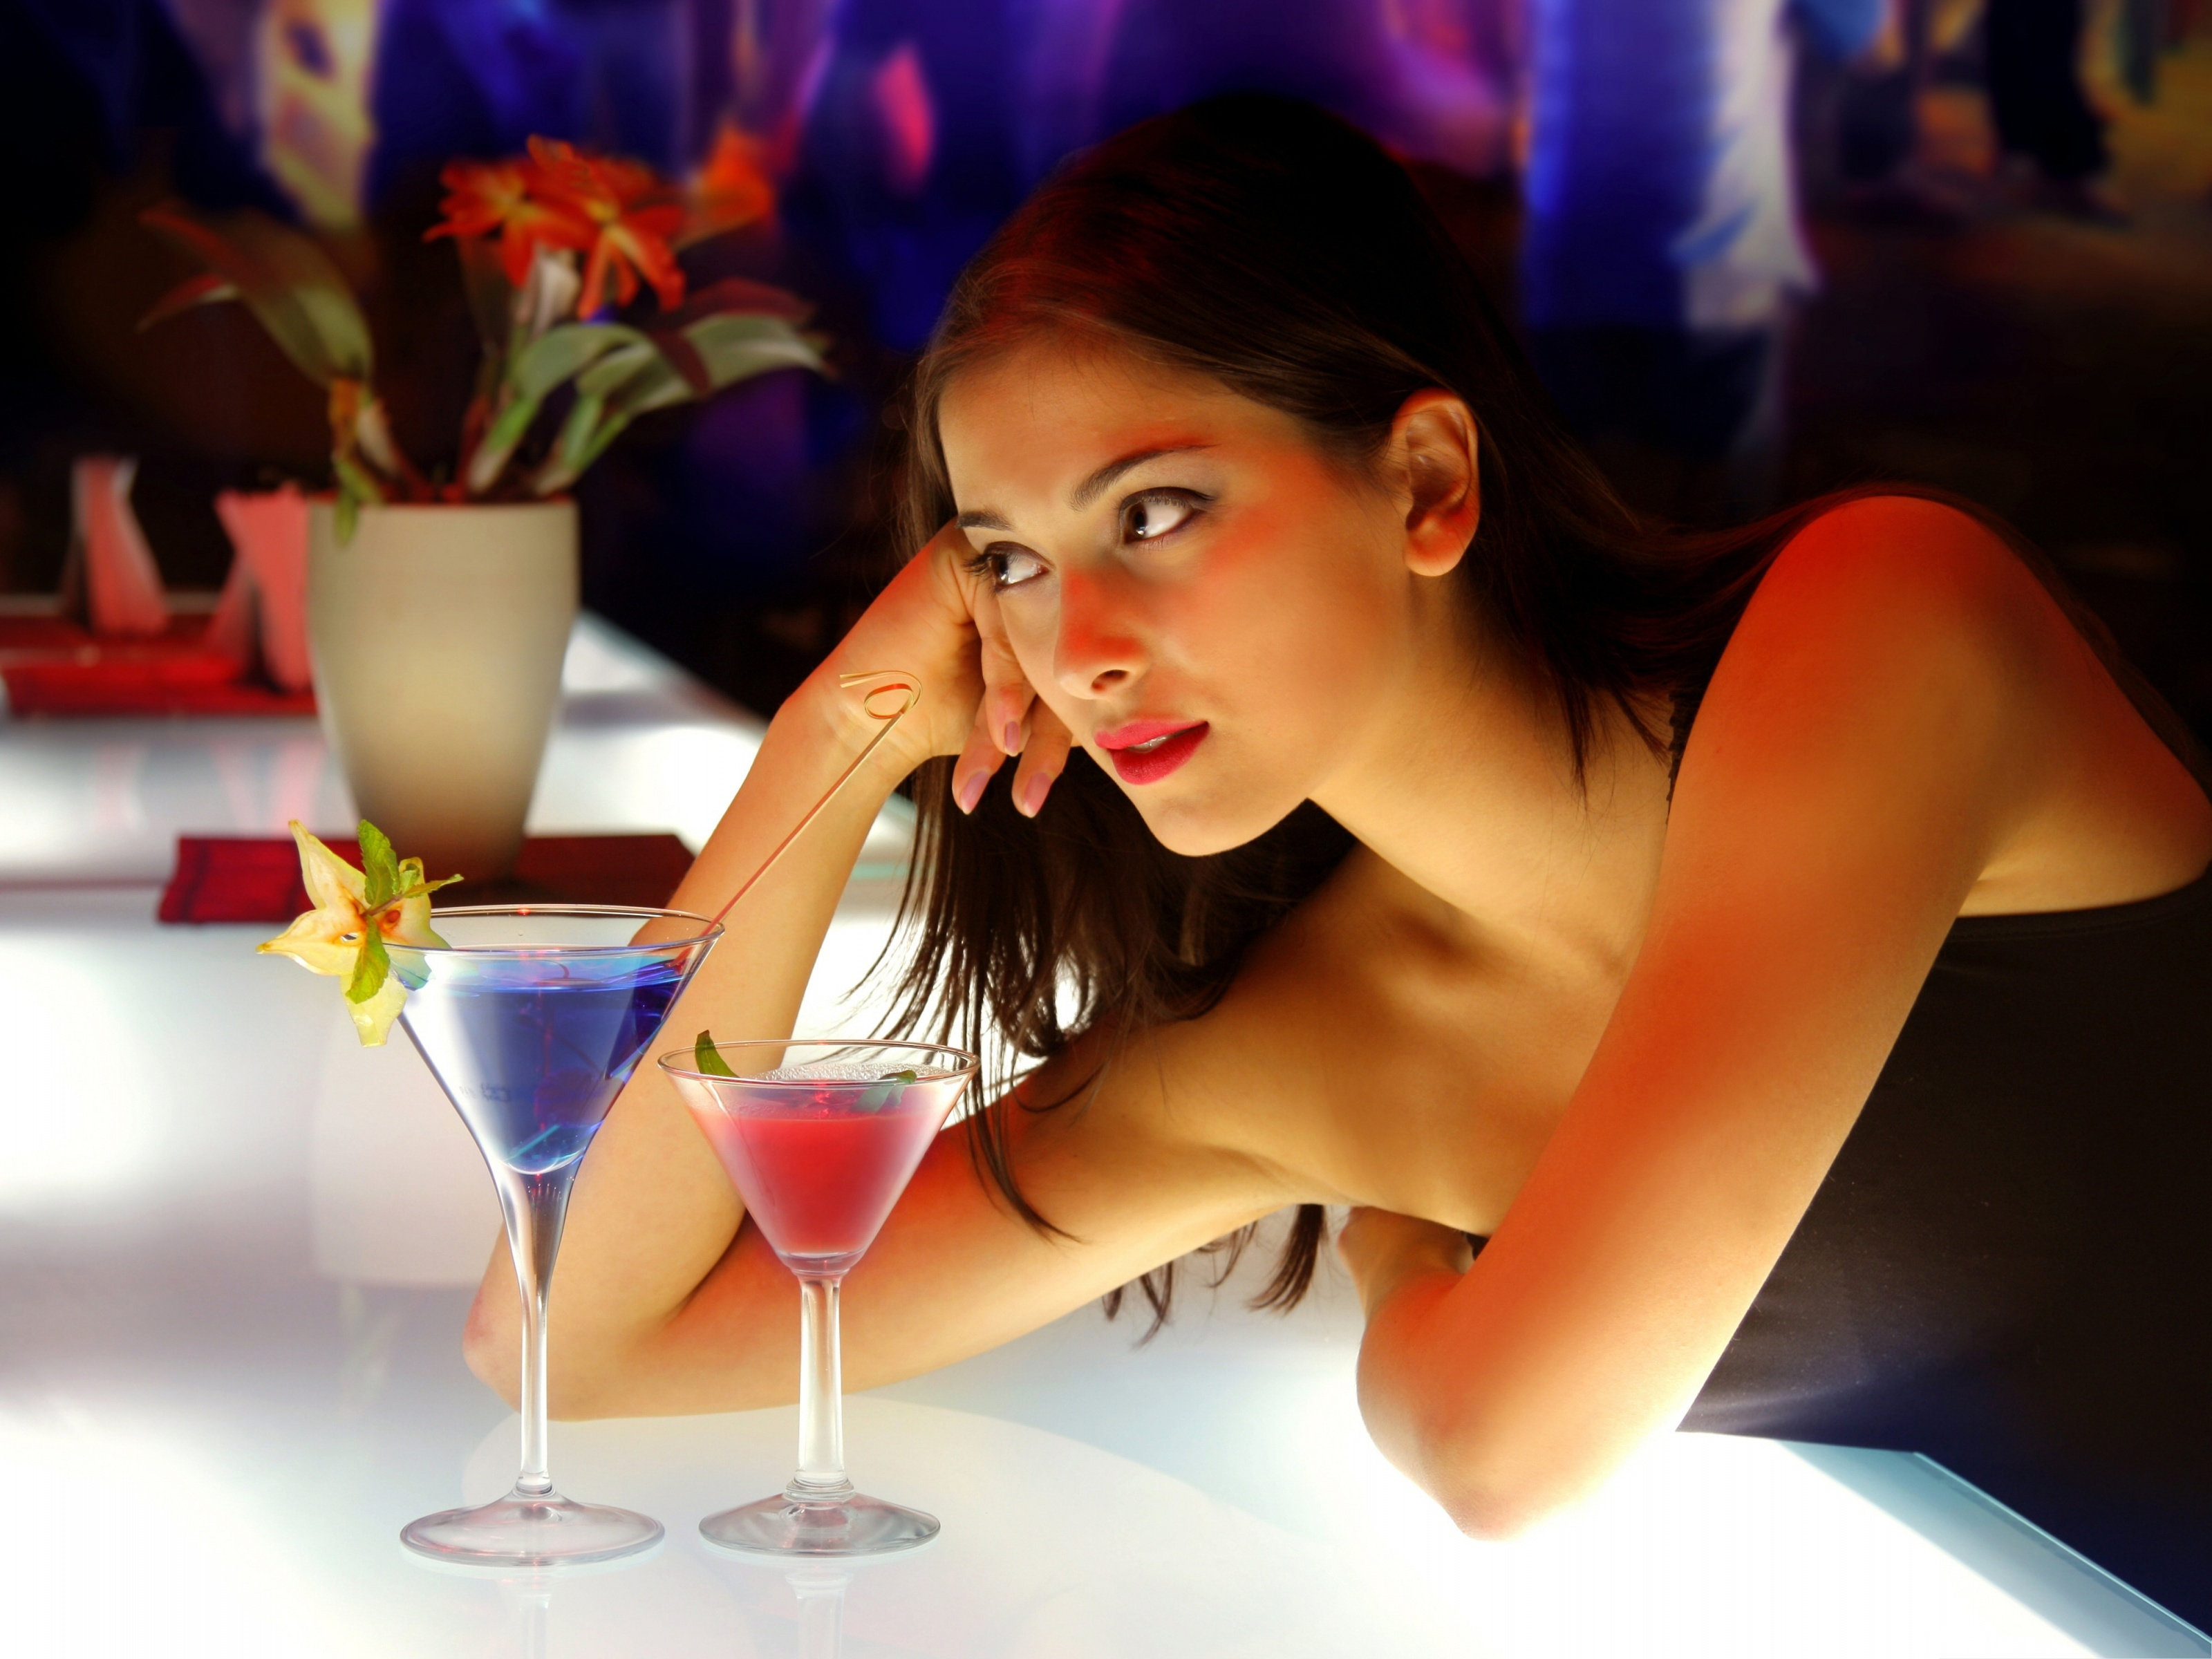 Girl-And-Cocktails-Beautiful-Girl-and-Good-Drinks-Both-Appealing